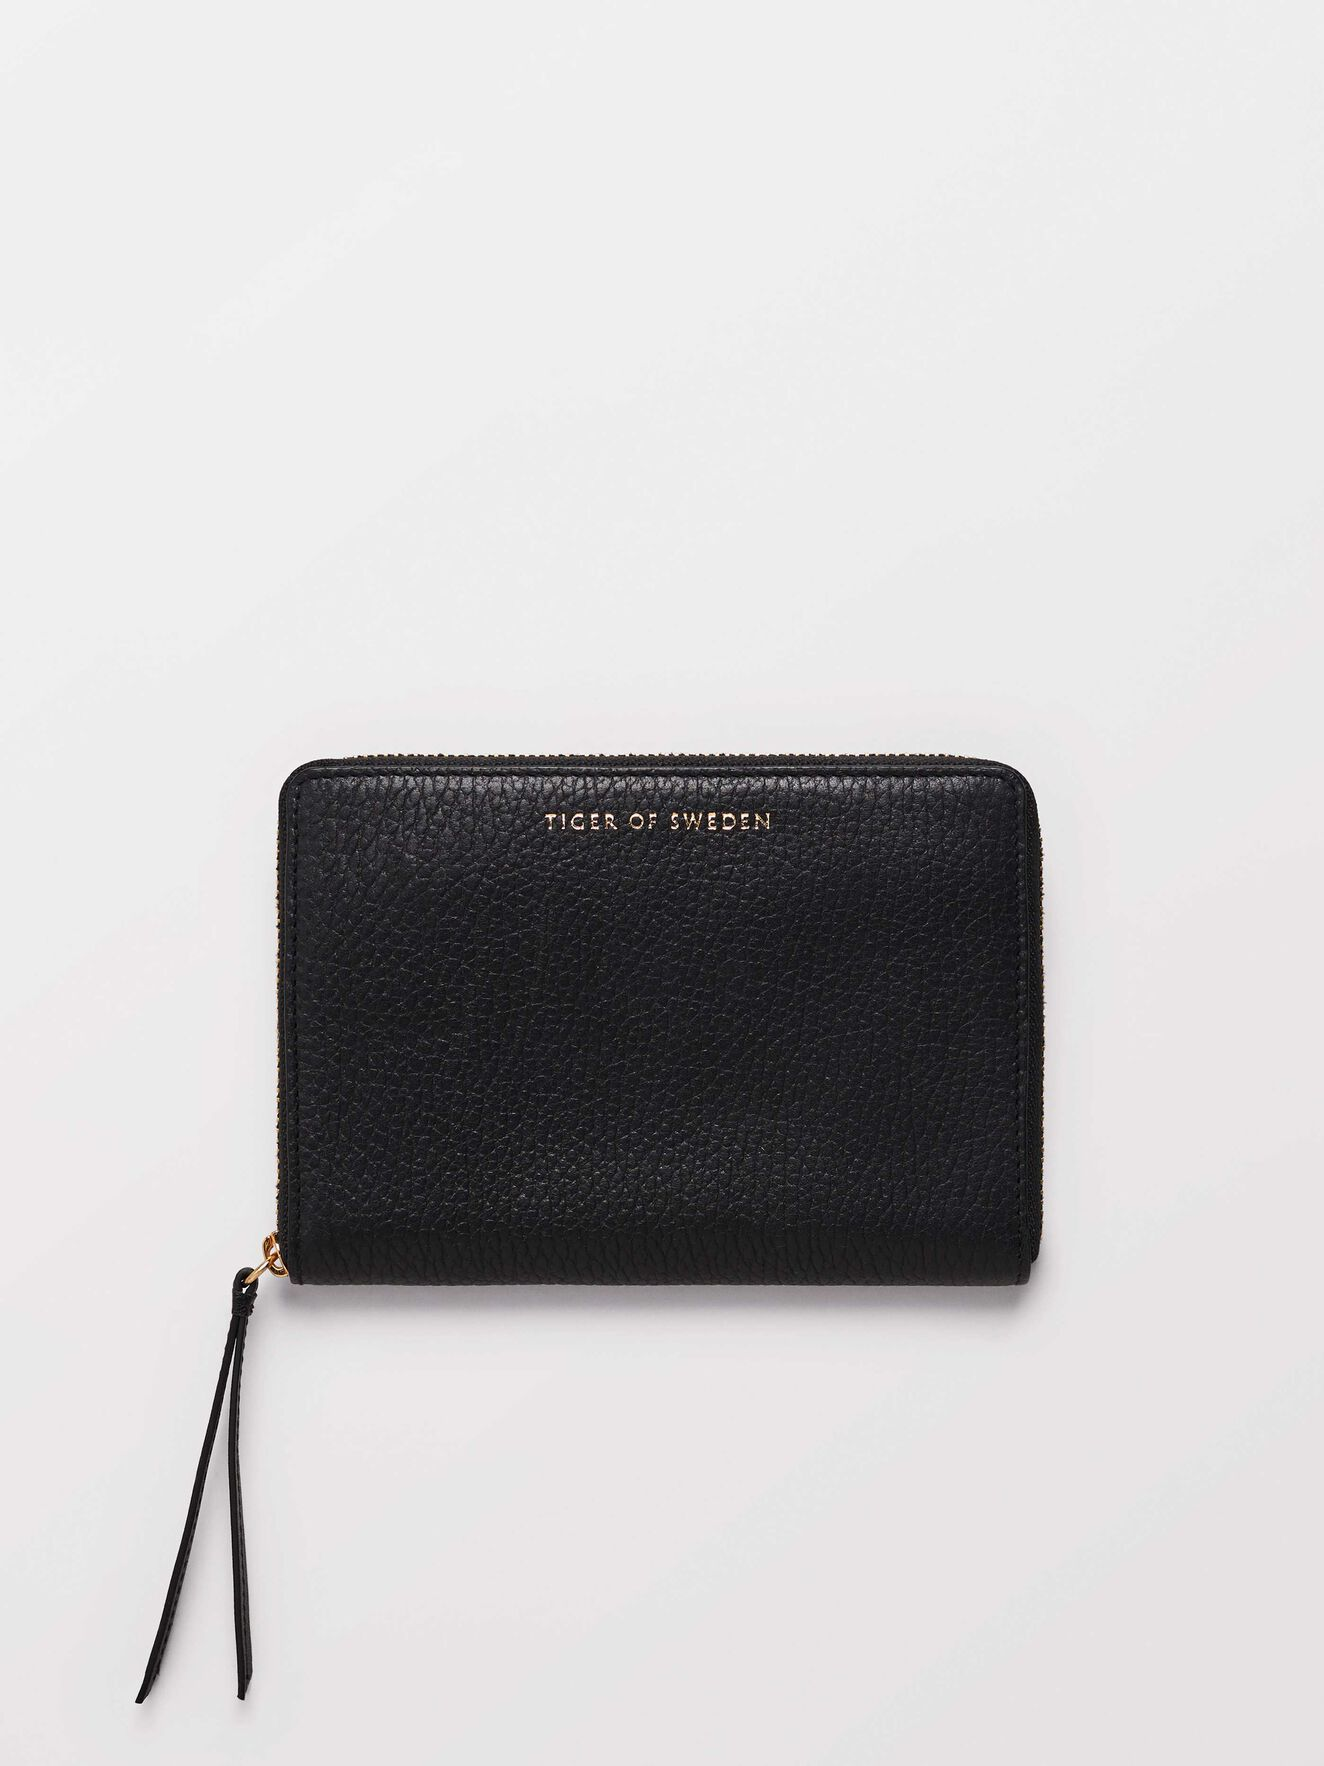 Wynina Wallet in Black from Tiger of Sweden